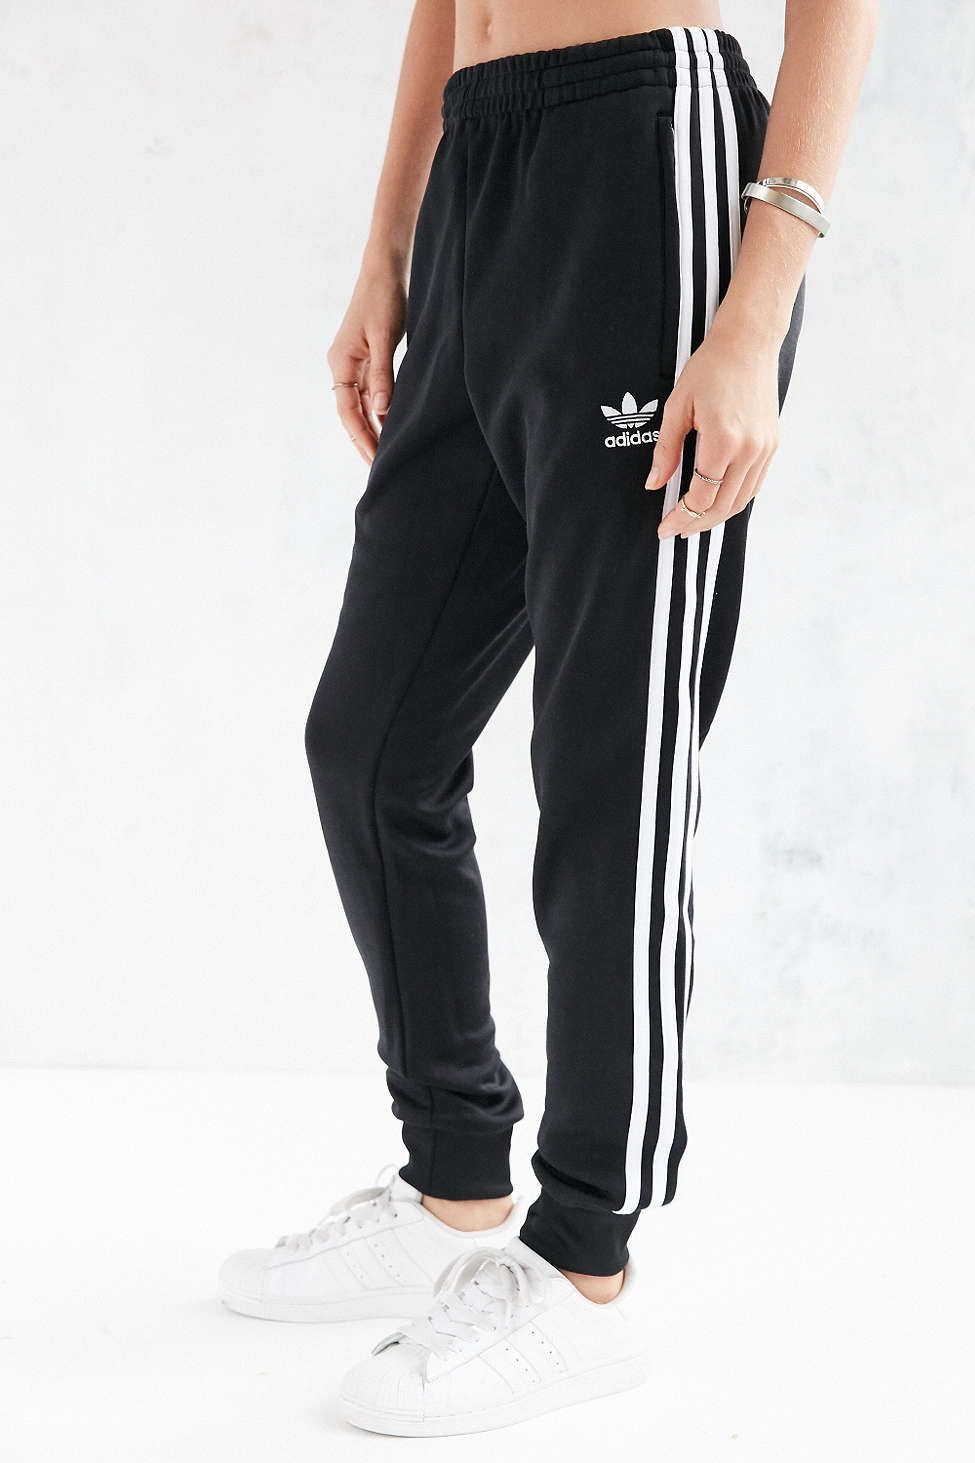 lowest price 42a10 d5313 adidas Originals Unisex Superstar Cuff Track Pant